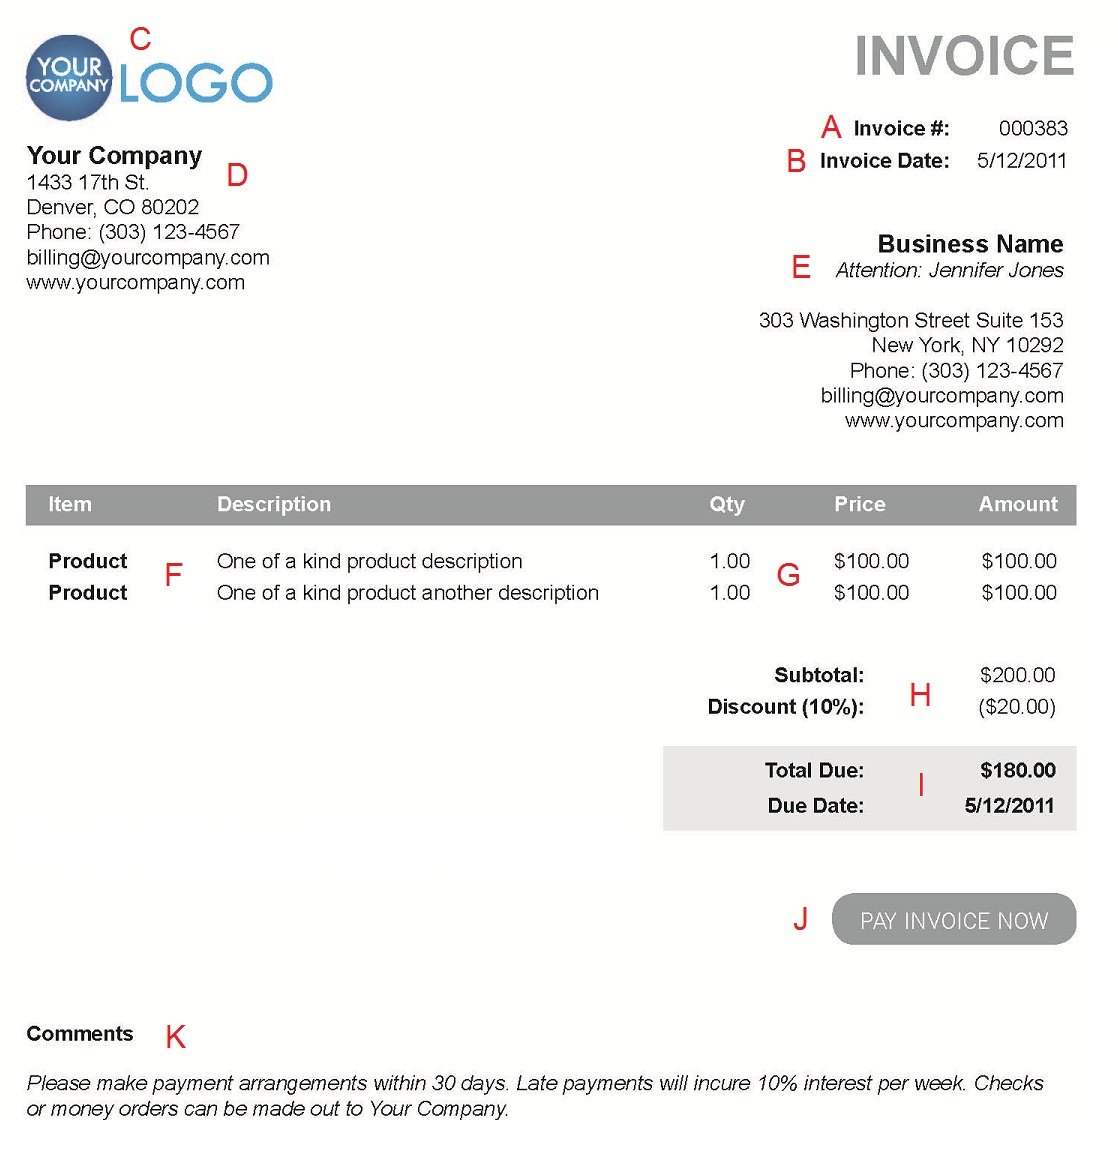 Ultrablogus  Nice The  Different Sections Of An Electronic Payment Invoice With Goodlooking A  With Awesome Invoice Filing System Also Invoice Template For Email In Addition Office Invoice Templates And Billing Invoice Template Excel As Well As Prepare Invoice Additionally Software Invoices From Paysimplecom With Ultrablogus  Goodlooking The  Different Sections Of An Electronic Payment Invoice With Awesome A  And Nice Invoice Filing System Also Invoice Template For Email In Addition Office Invoice Templates From Paysimplecom